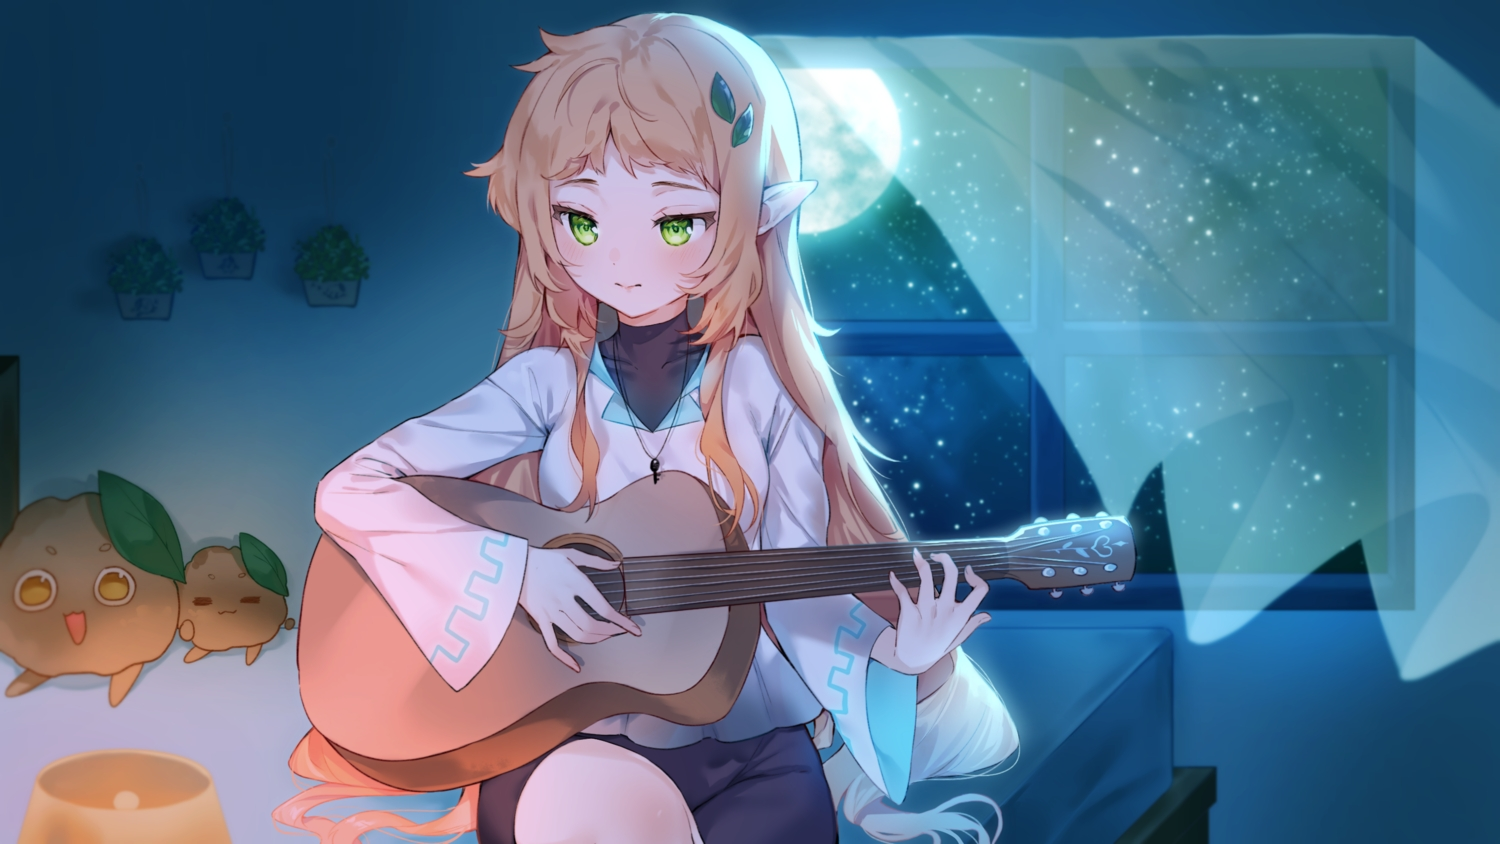 brown_hair cheli_(kso1564) guitar instrument long_hair moon necklace night pointed_ears sky stars